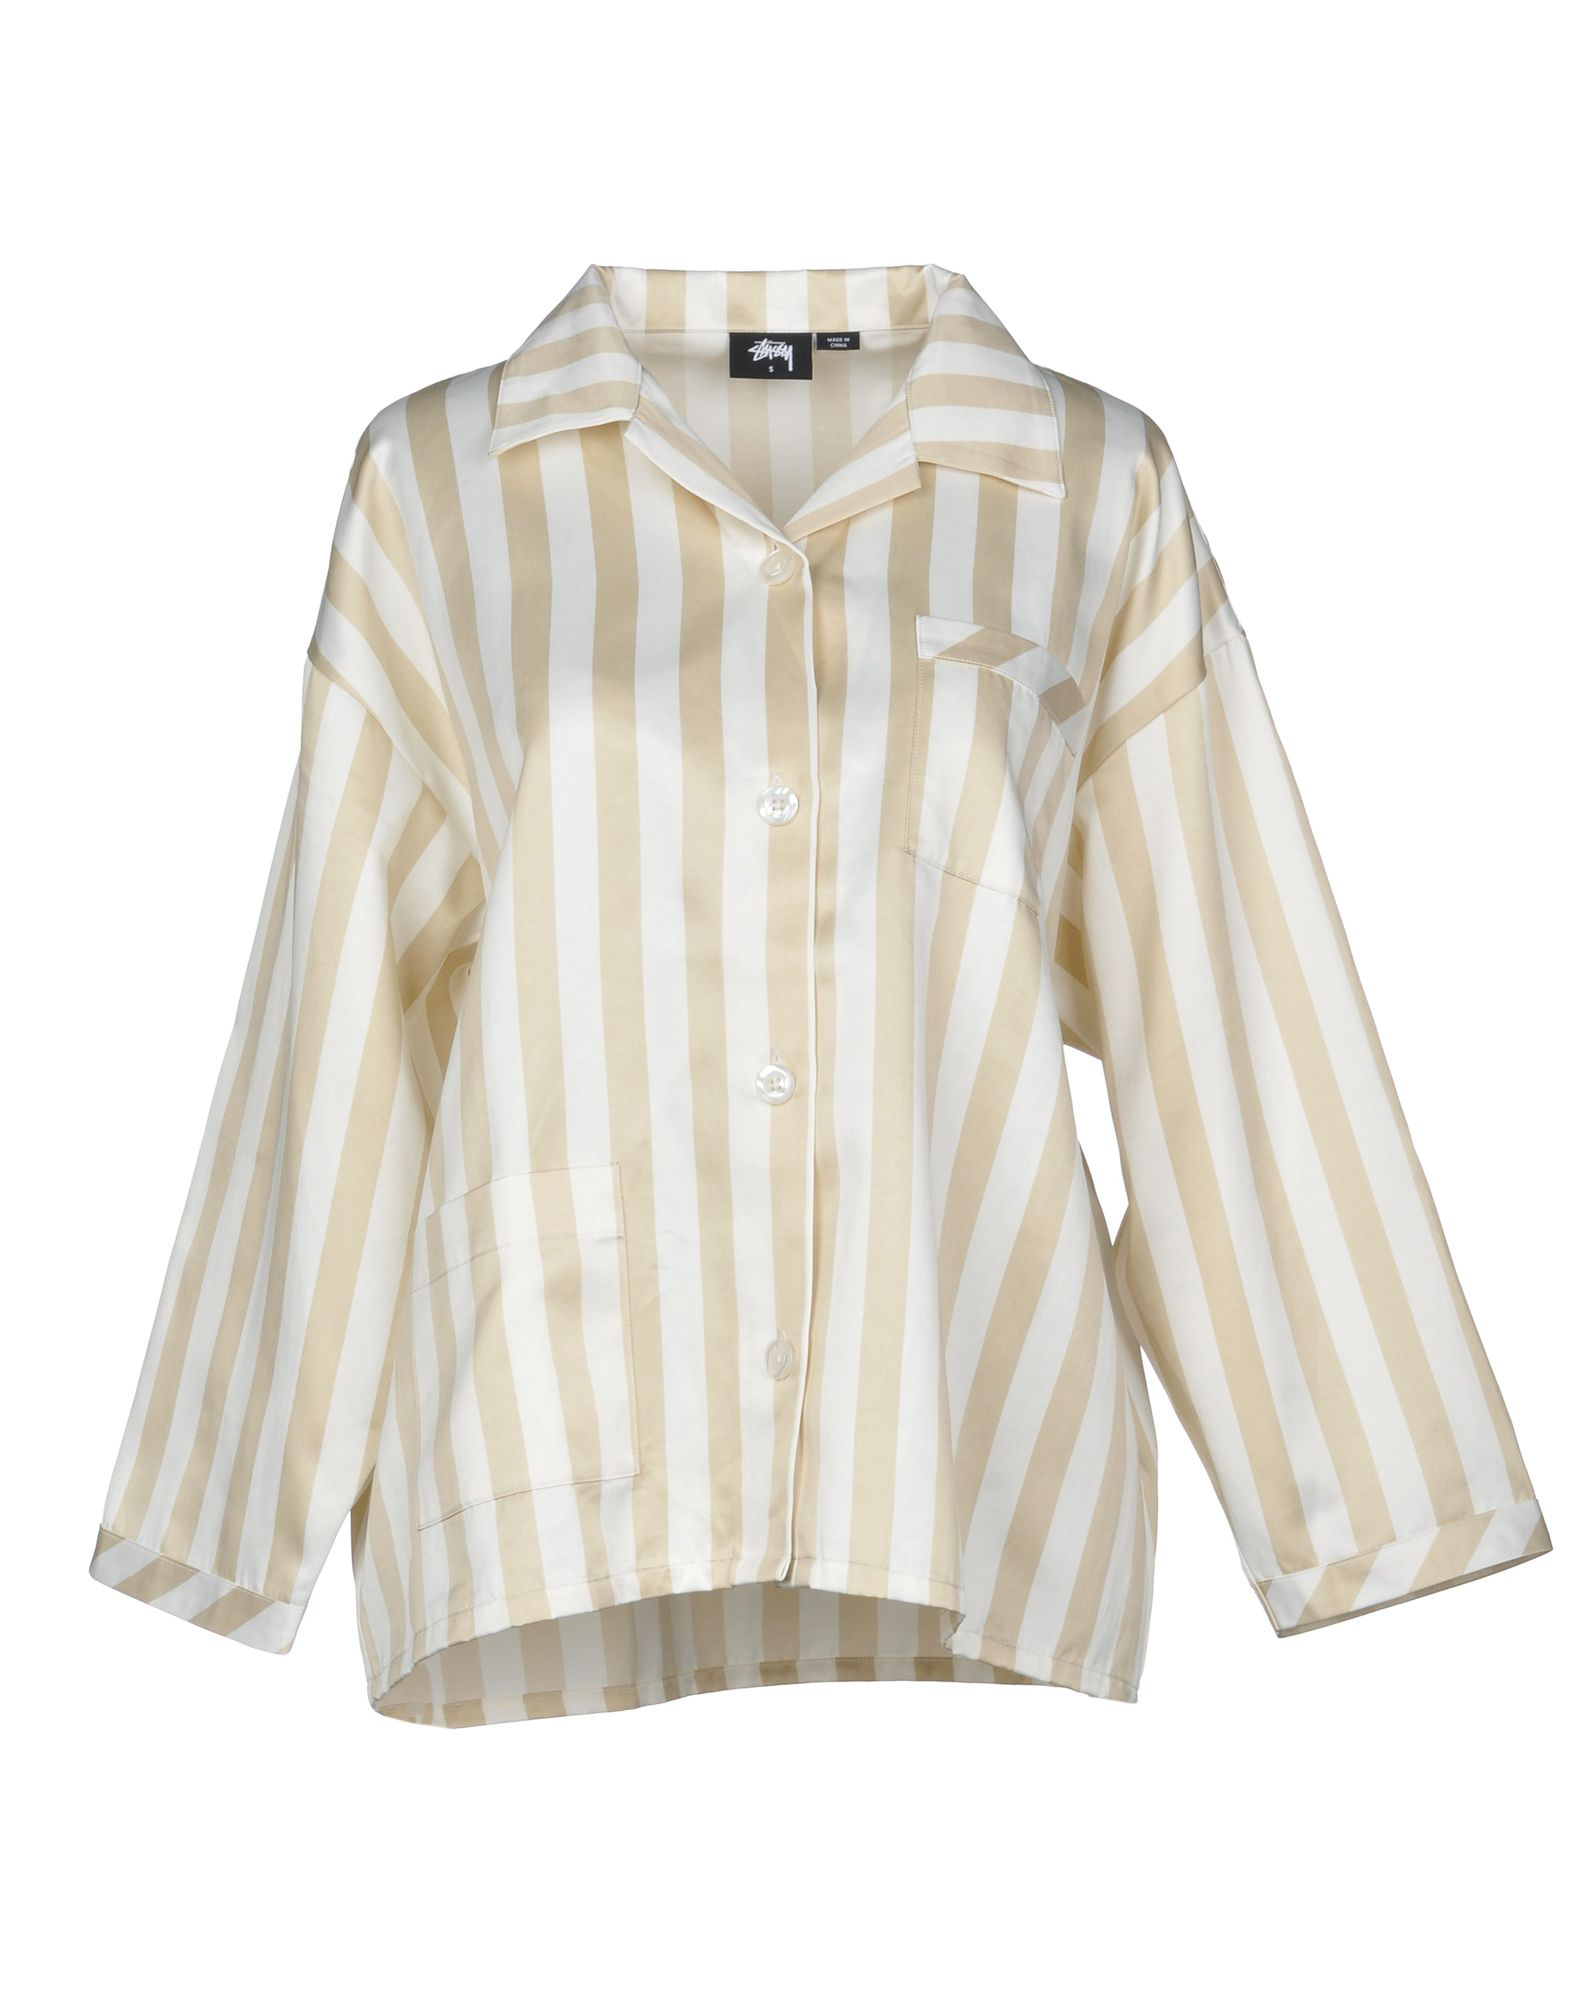 Stussy Striped Shirt In Beige